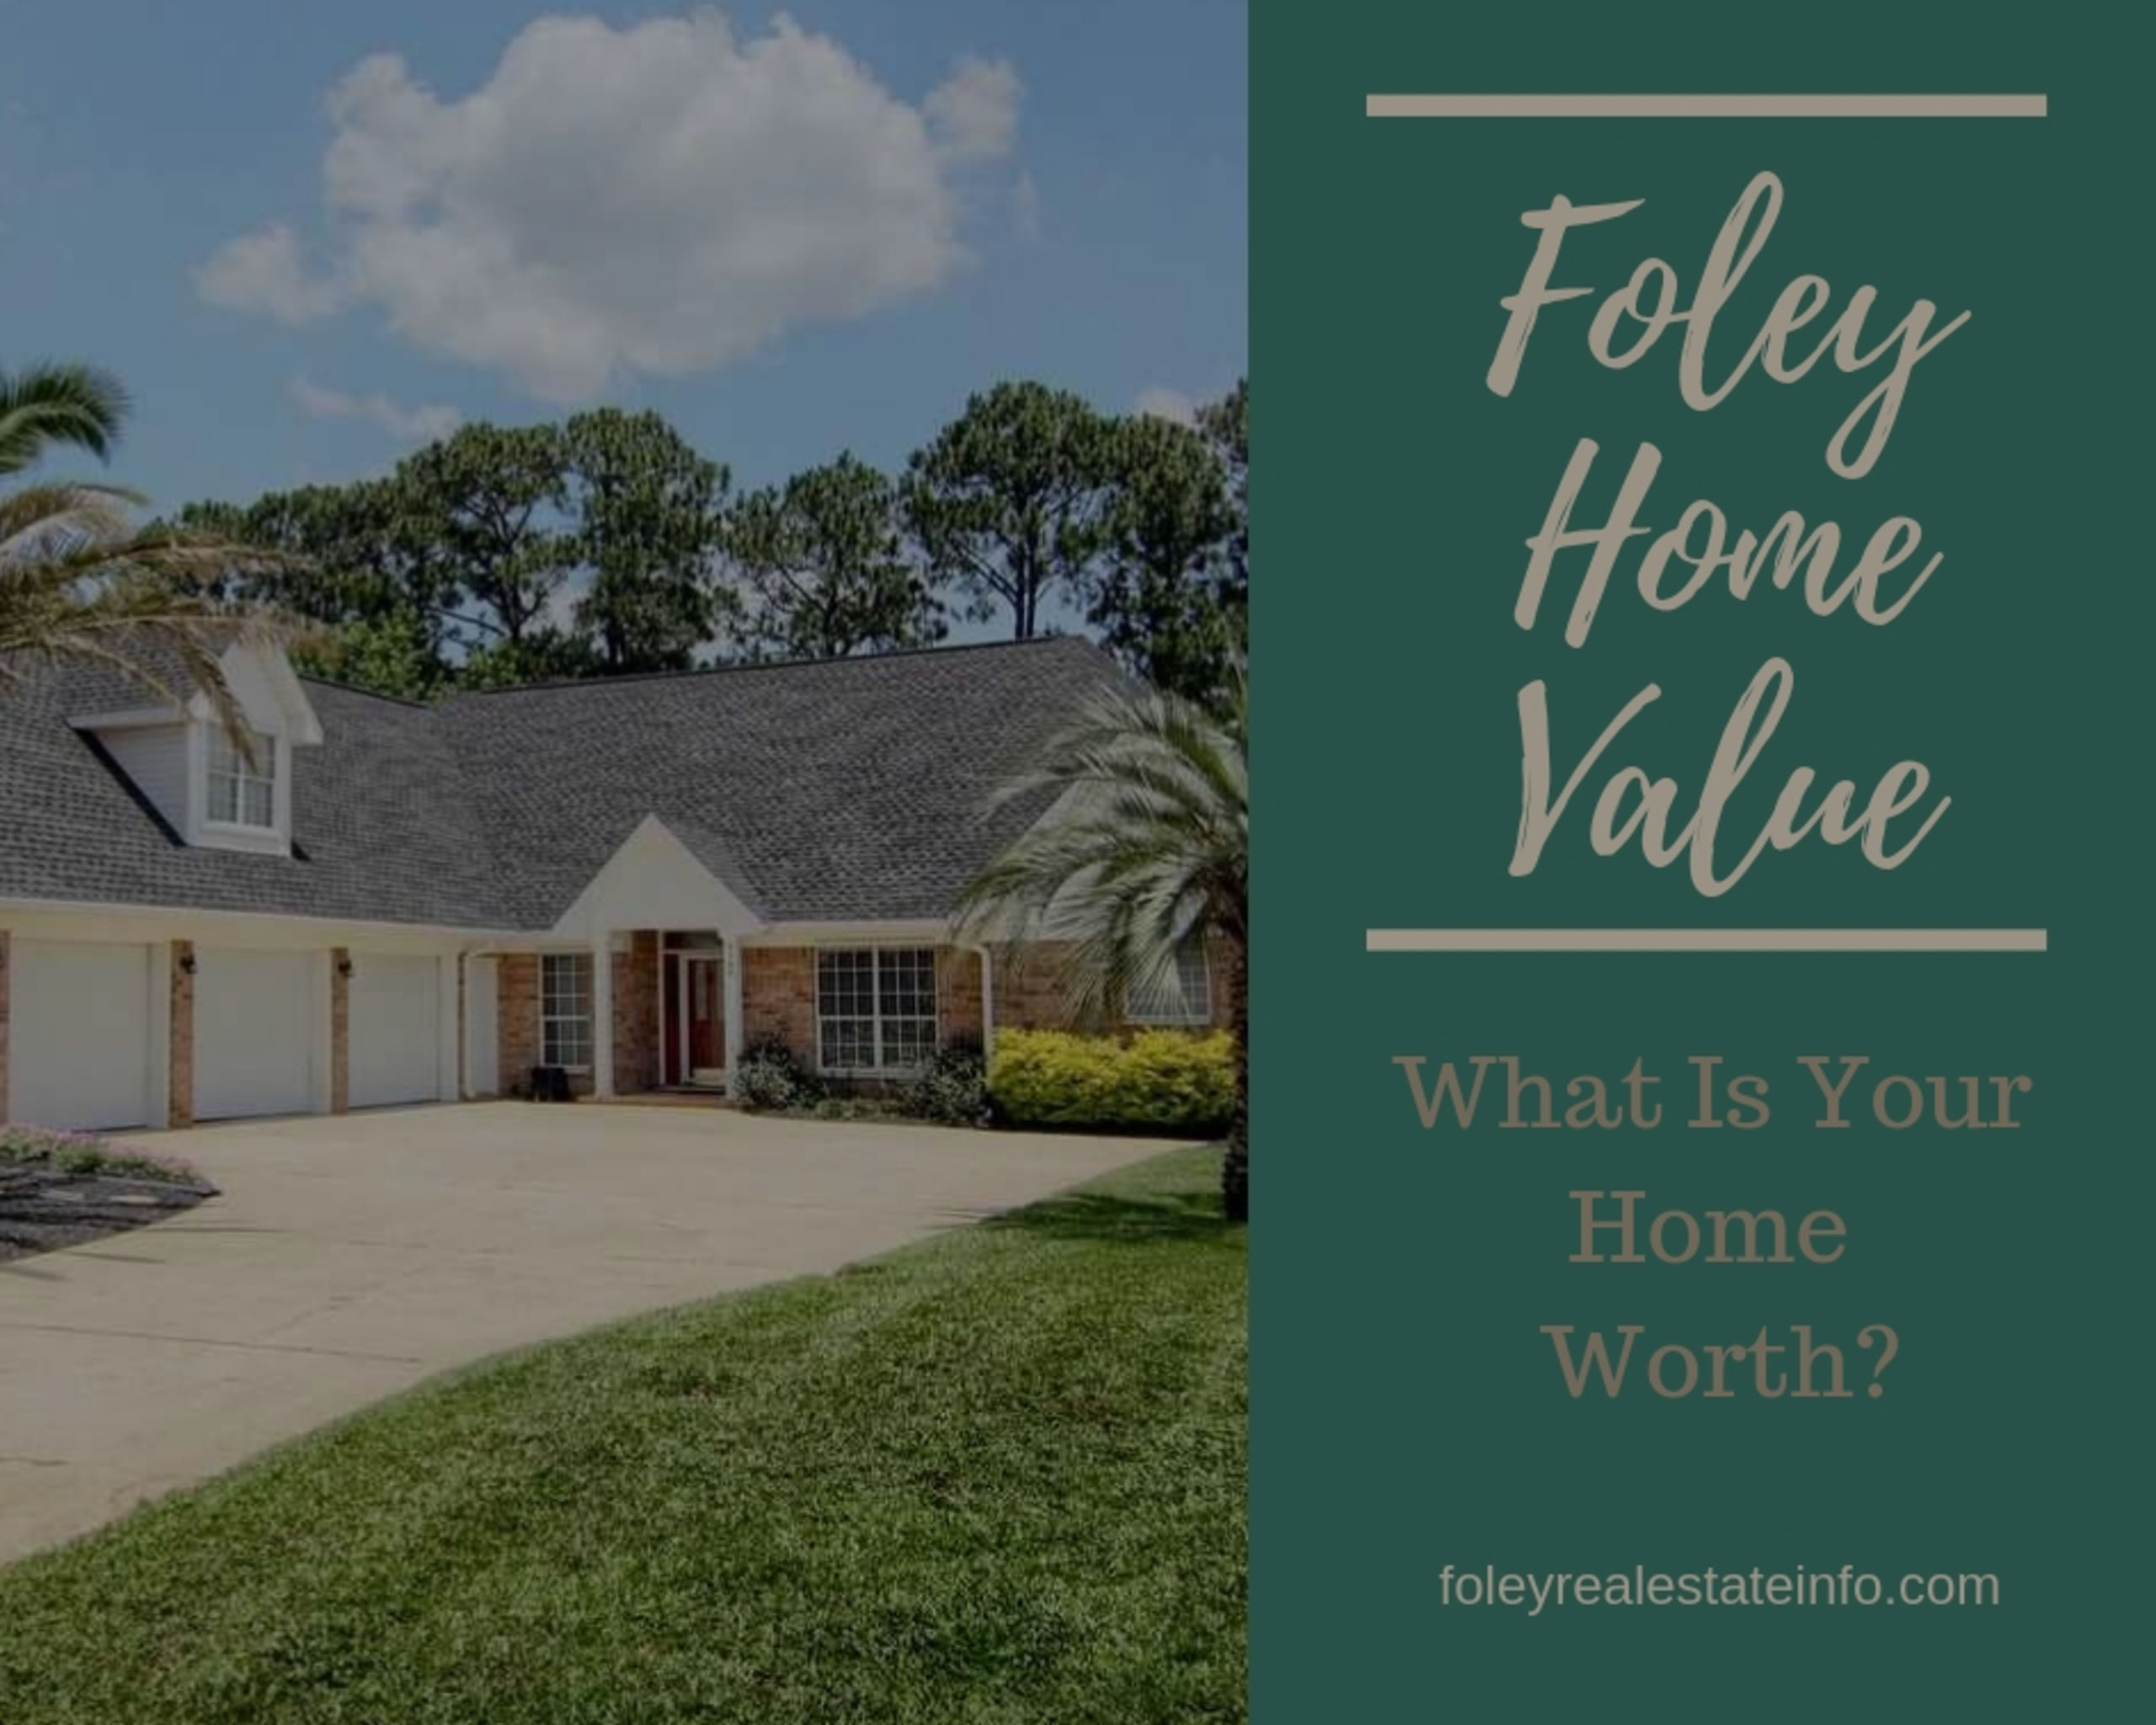 Foley Home Value